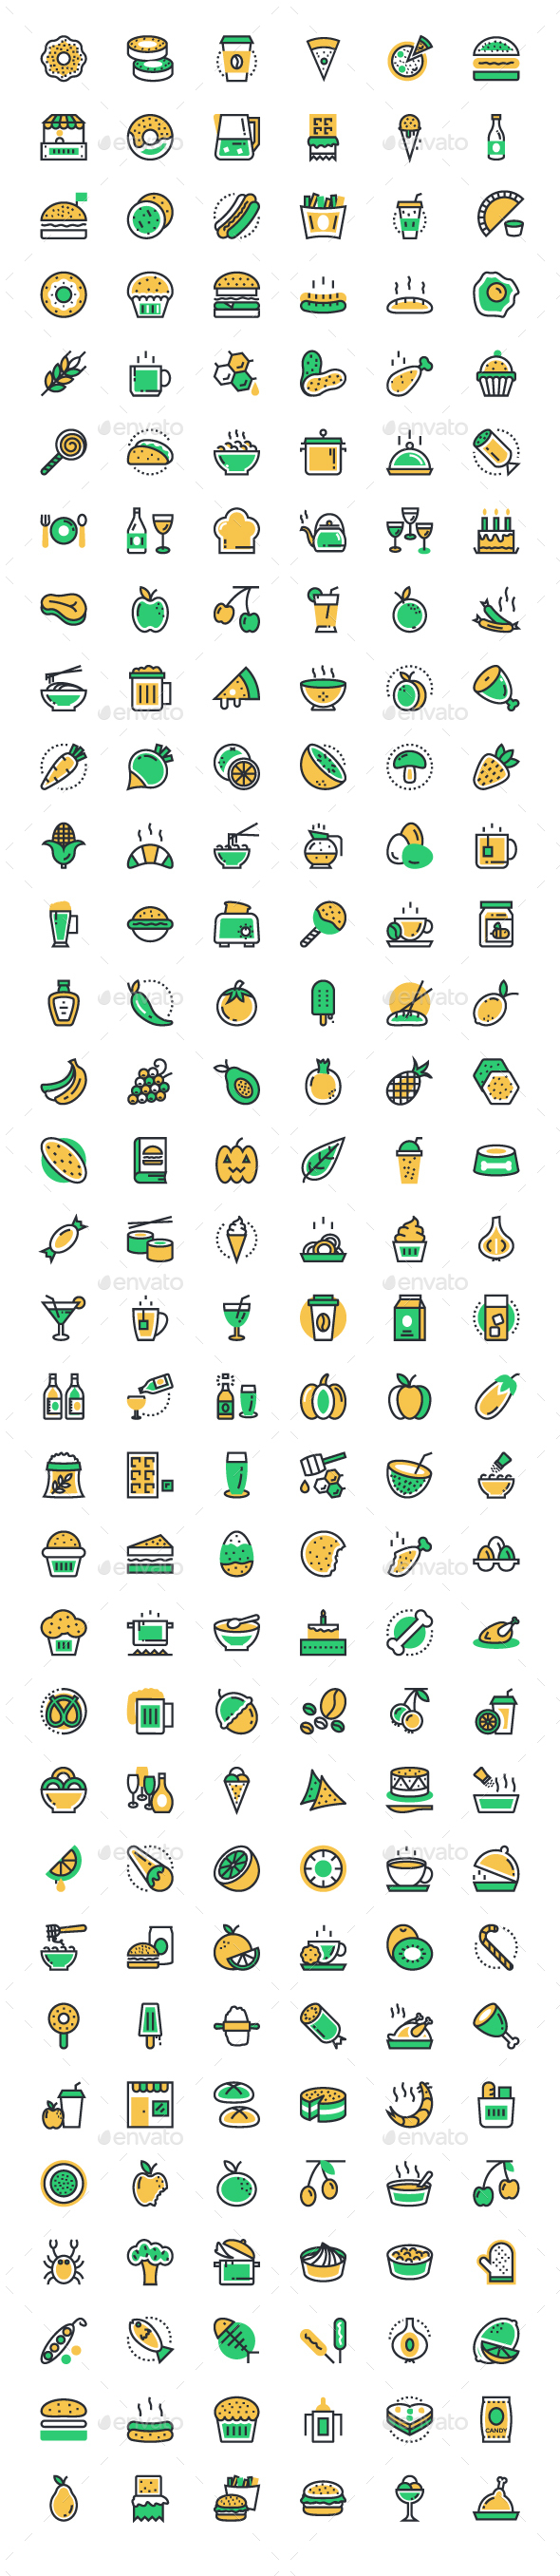 175+ Food and Drinks Icons Set - Food Objects